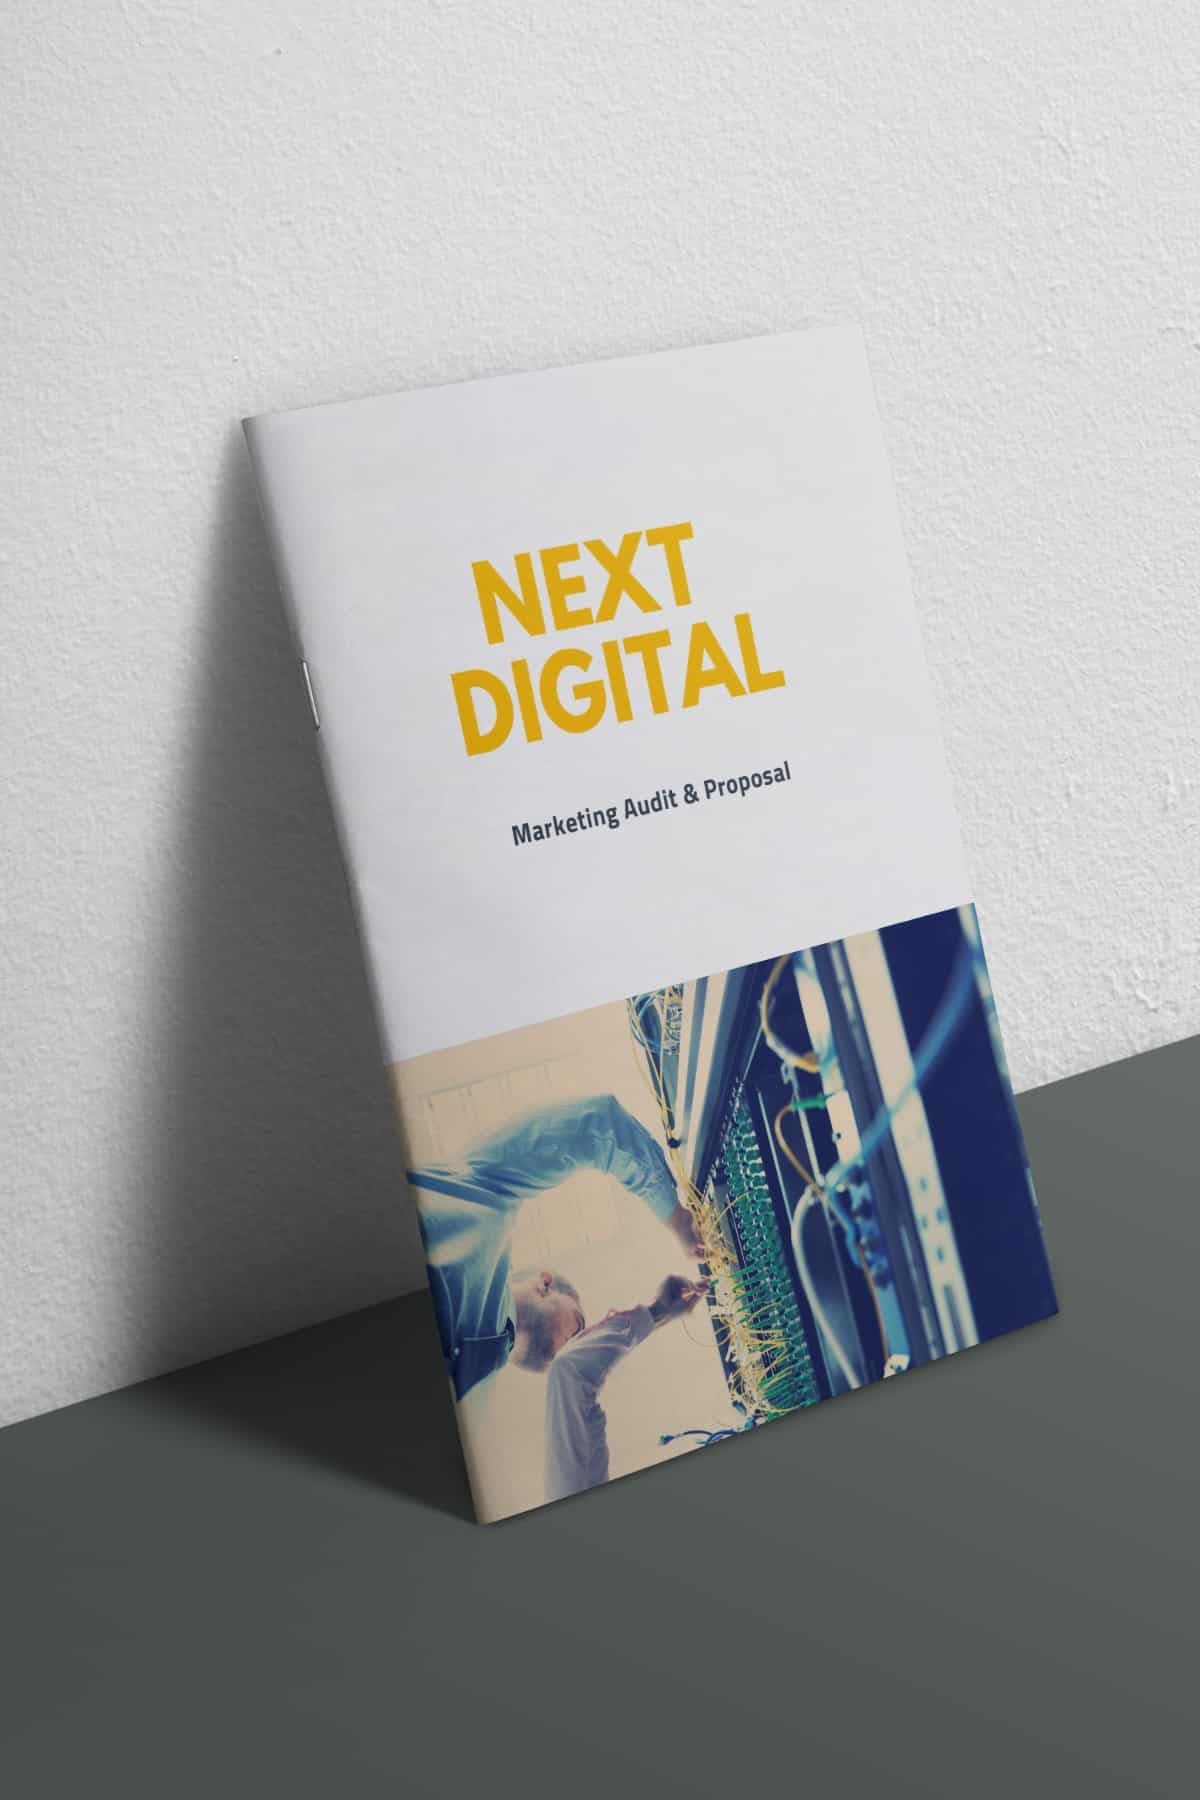 Next Digital